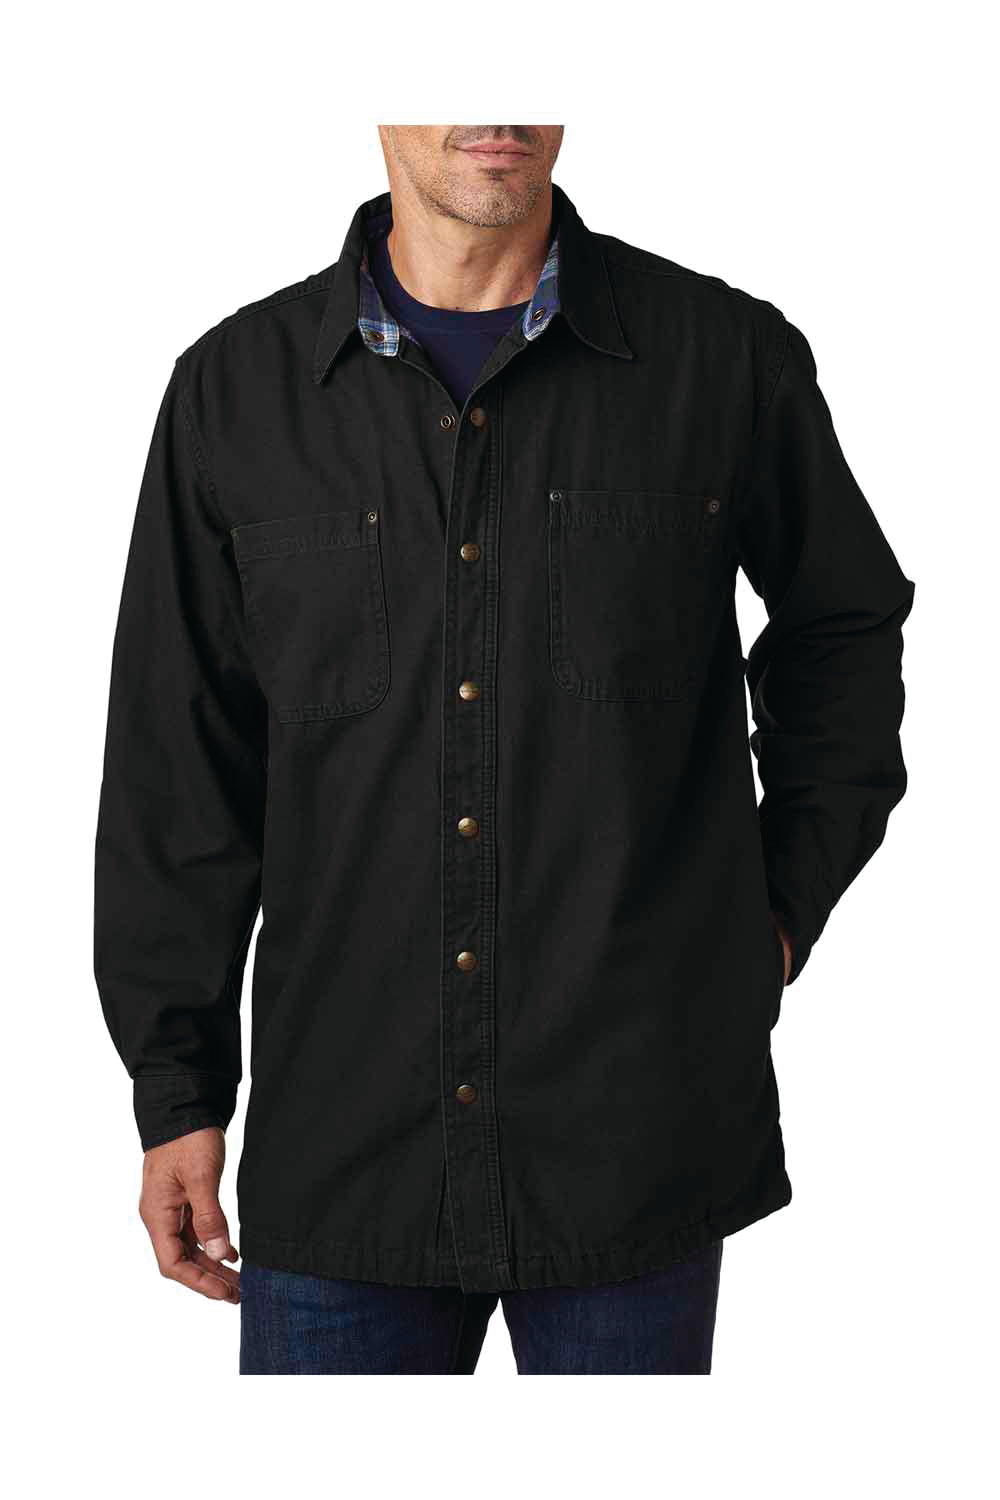 Backpacker BP7006 Mens Canvas Button Down Shirt Jacket Black Front